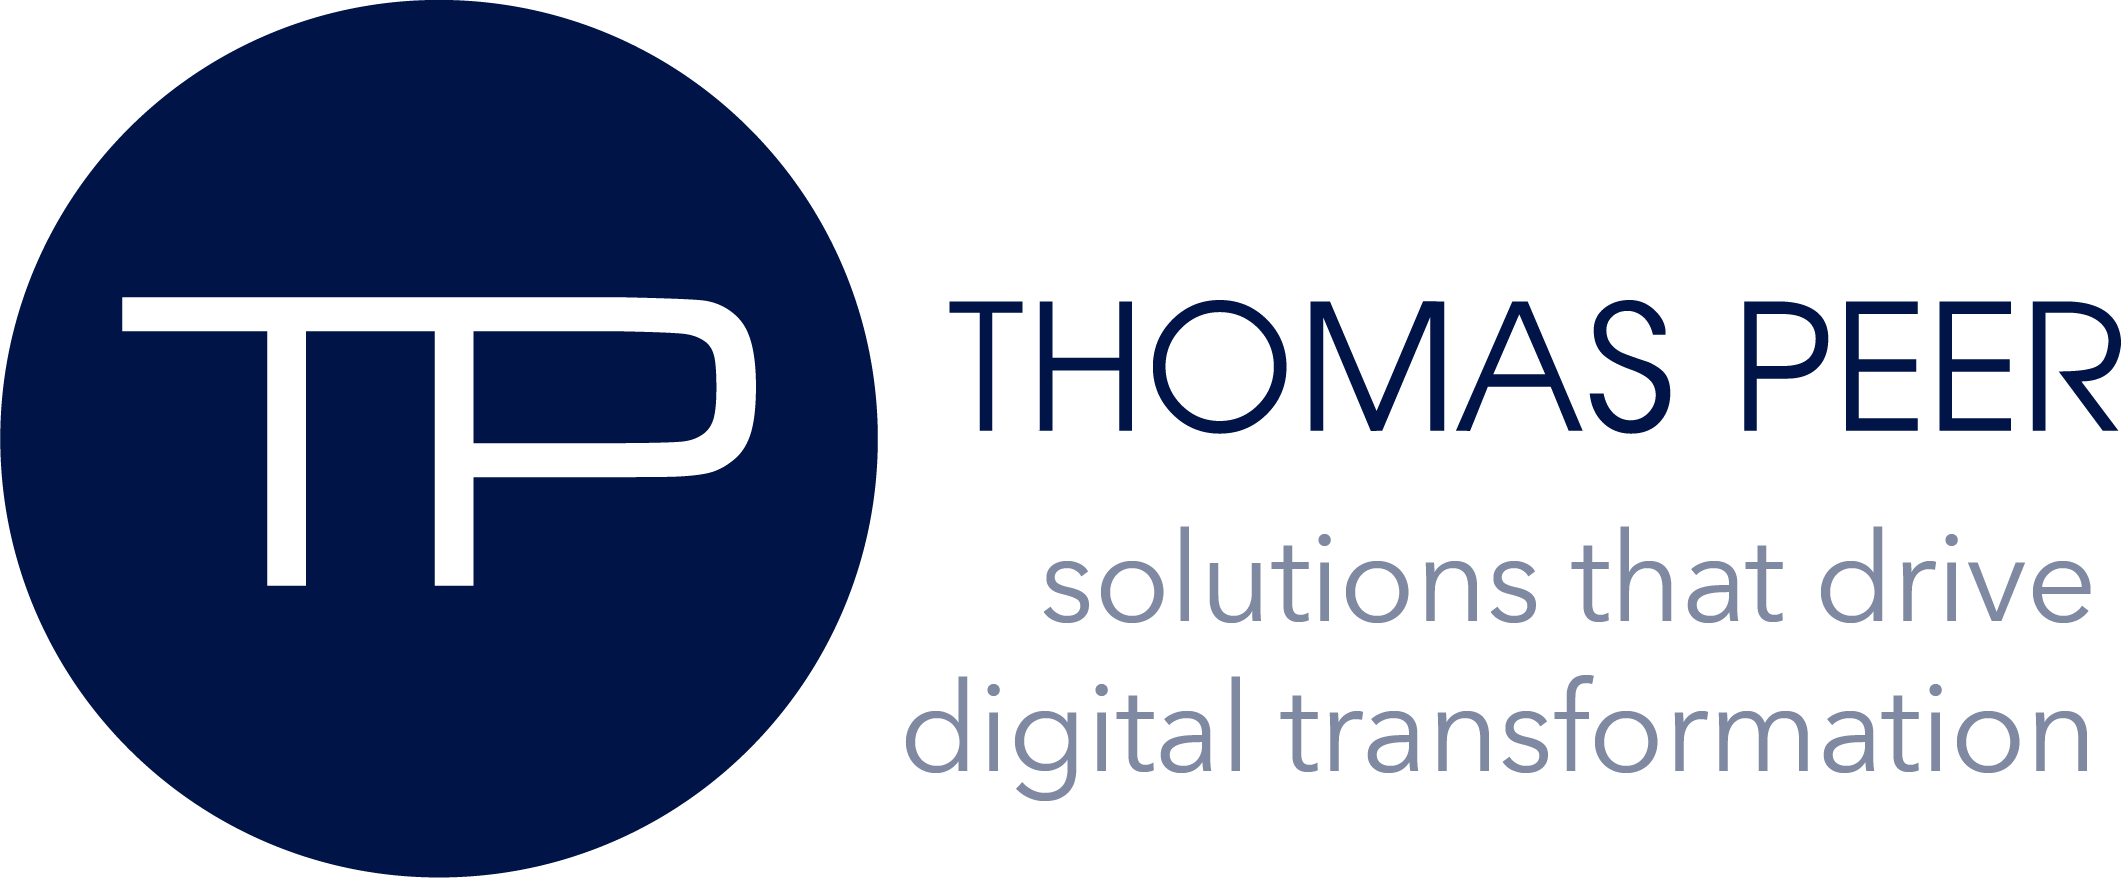 Thomas Peer Solutions